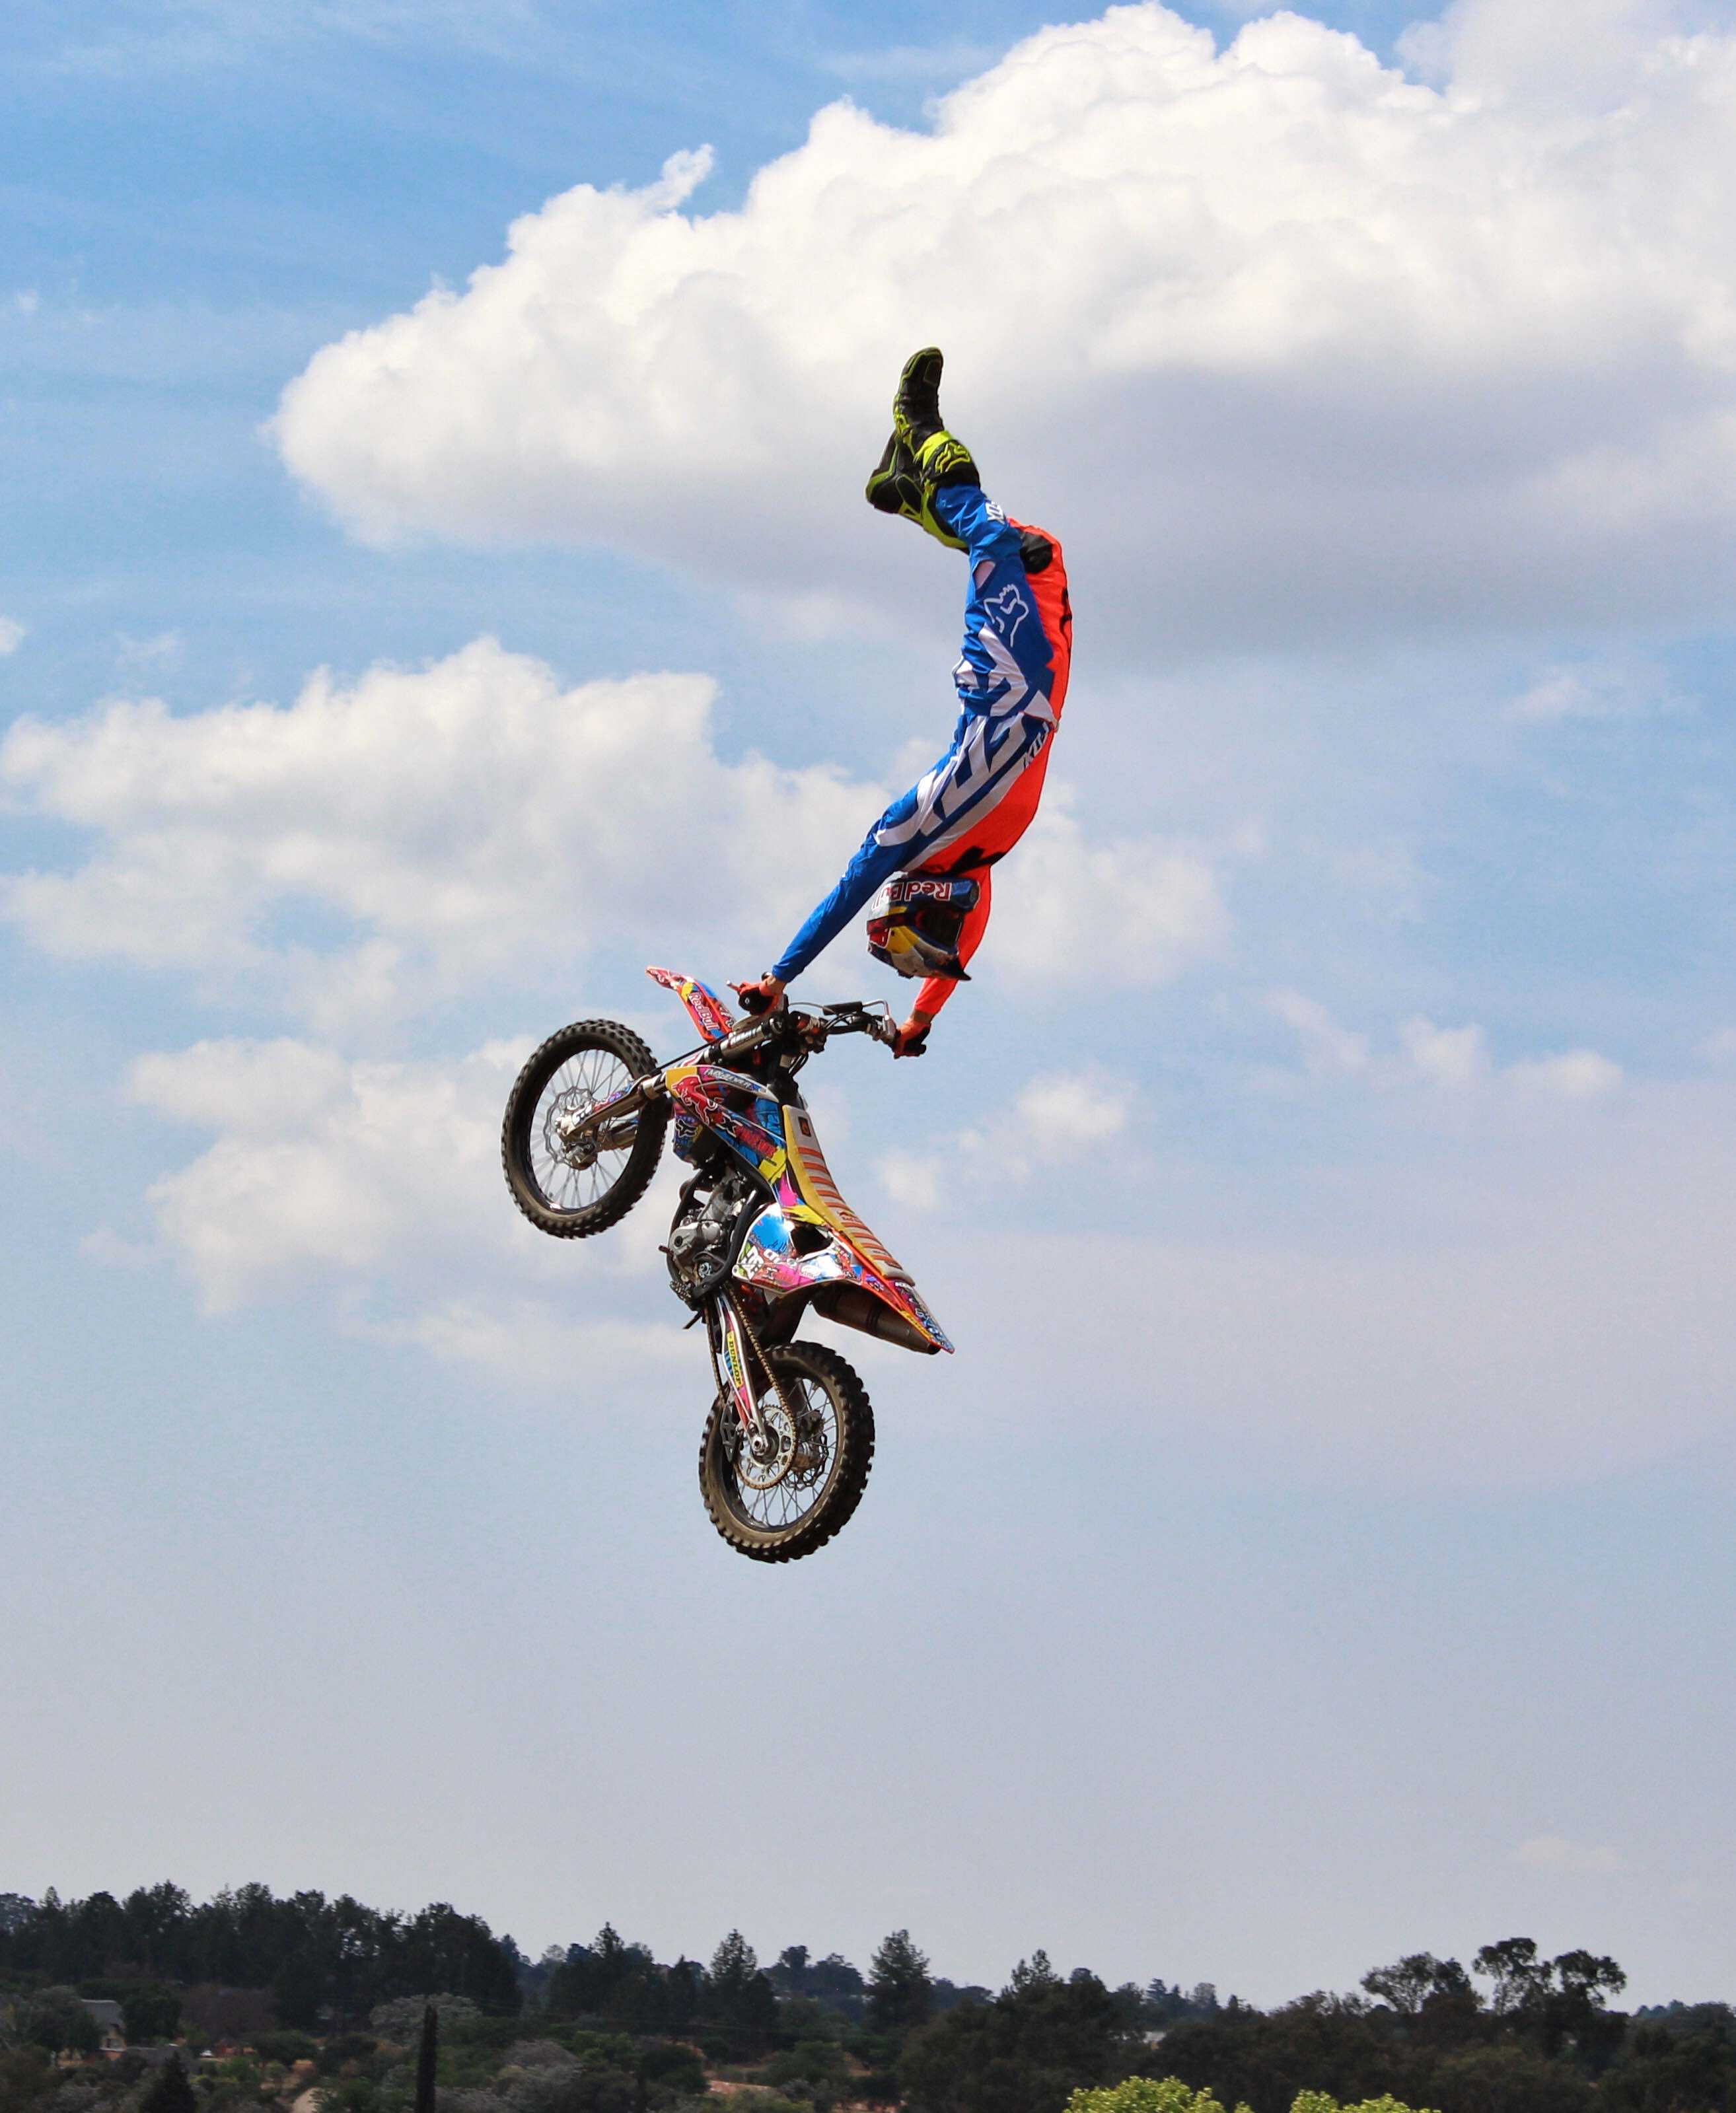 Nitro Circus Live comes back to South Africa in October 2017